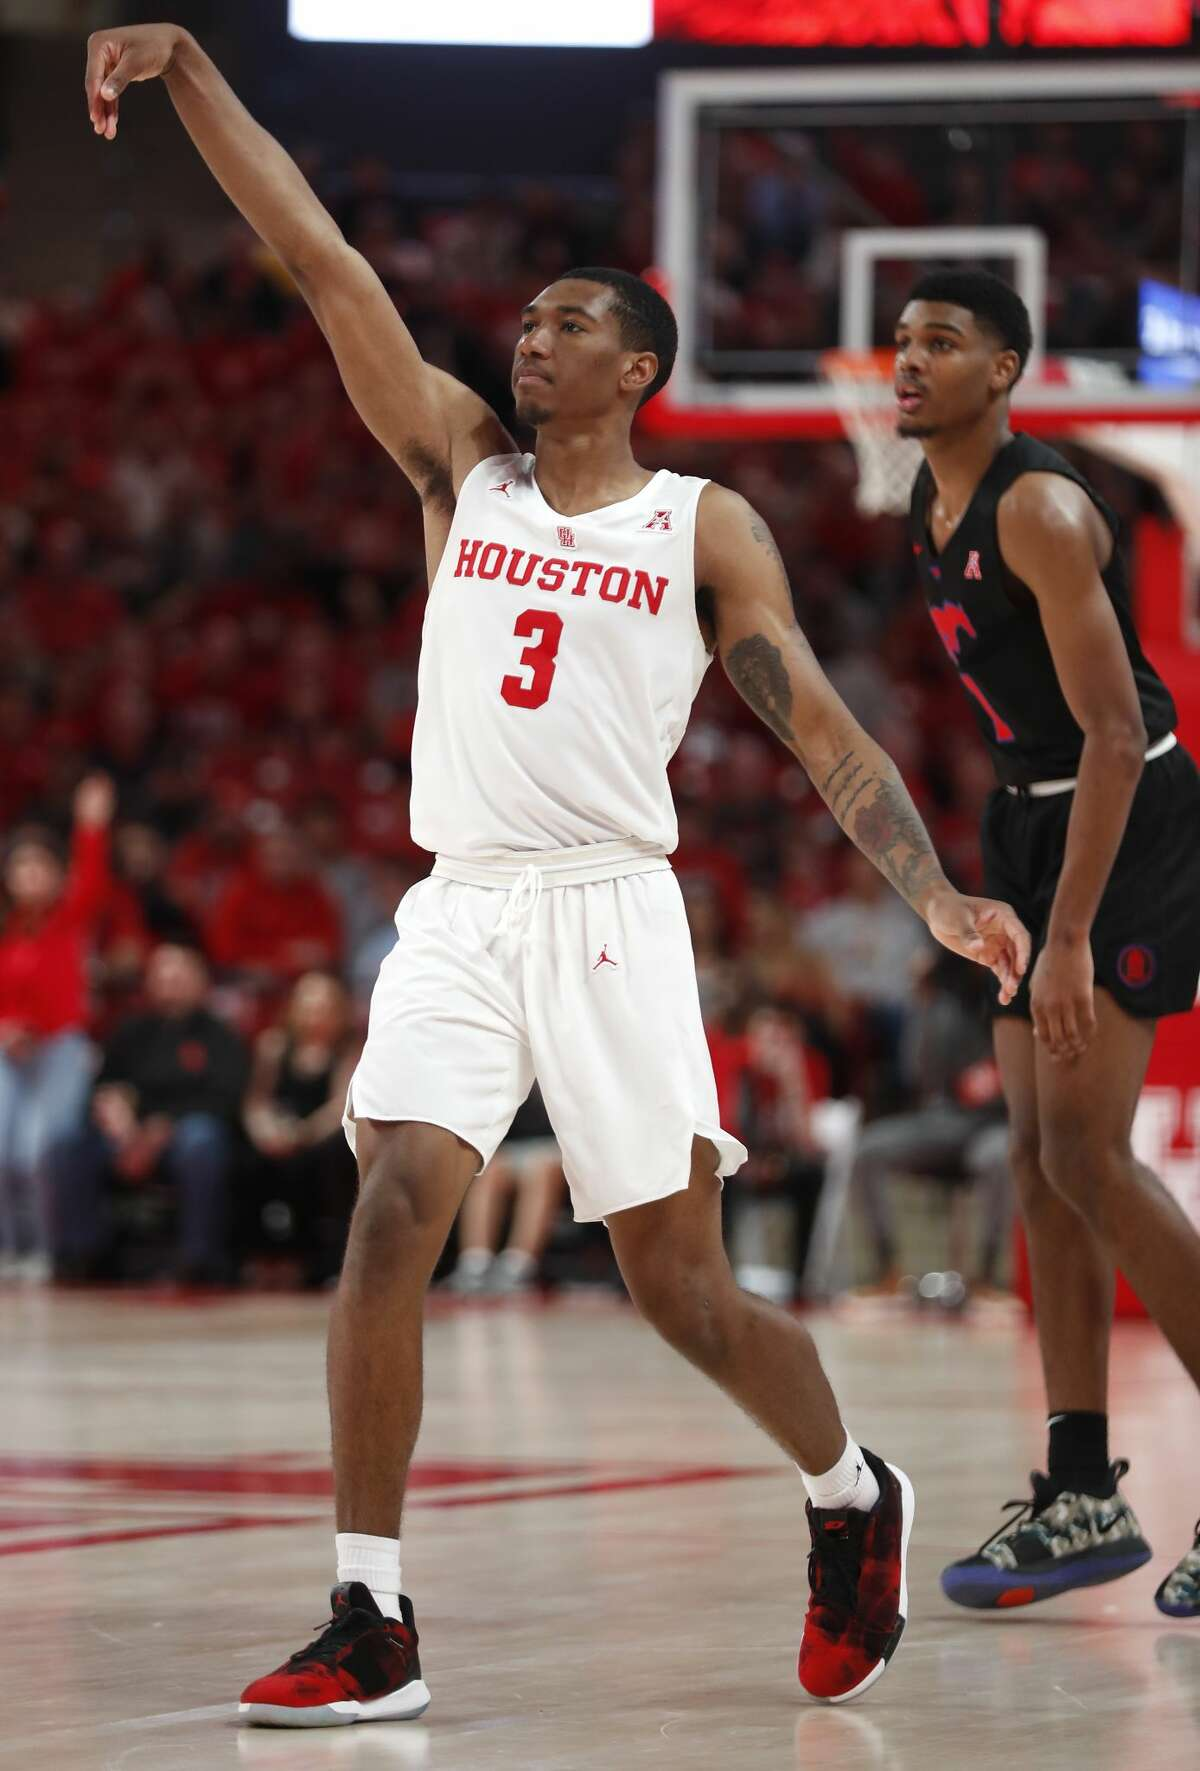 Houston guard Armoni Brooks (3) watches the flight of his 3-pointer against Southern Methodist during the second half of an NCAA basketball game at Fertitta Center on Thursday, March 7, 2019, in Houston.